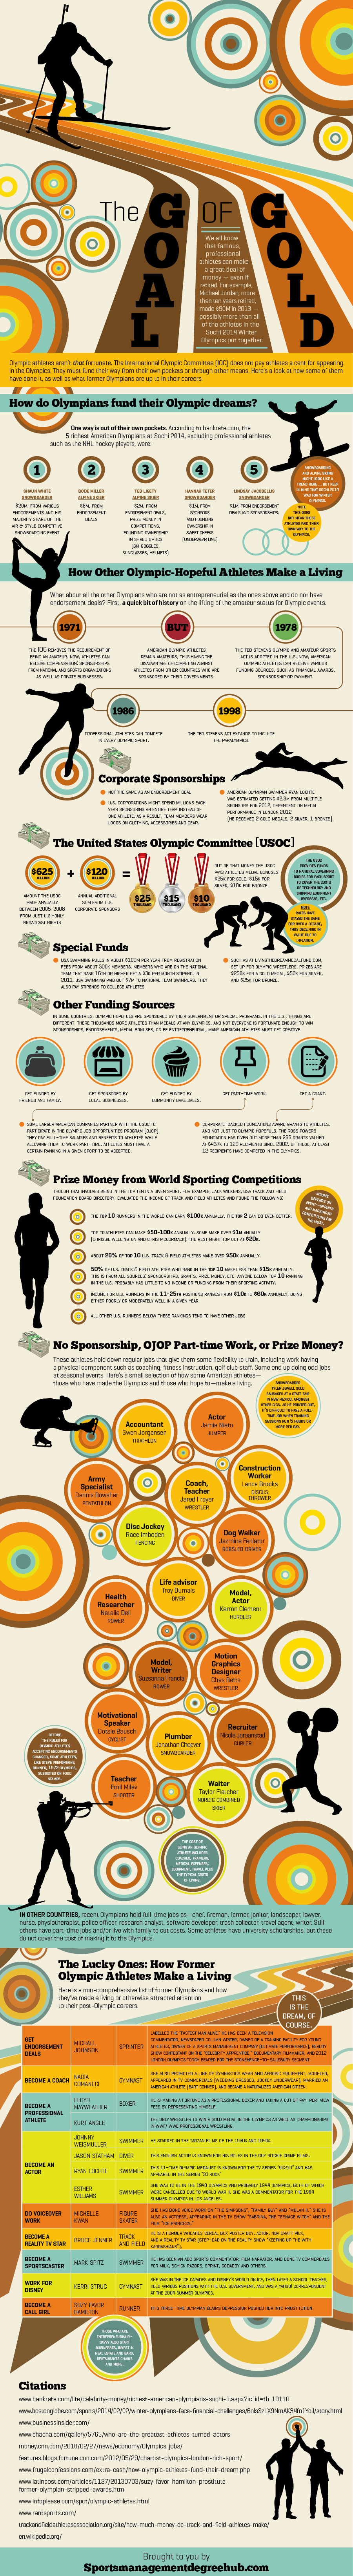 Did You Know That An Olympian Salary Is $0